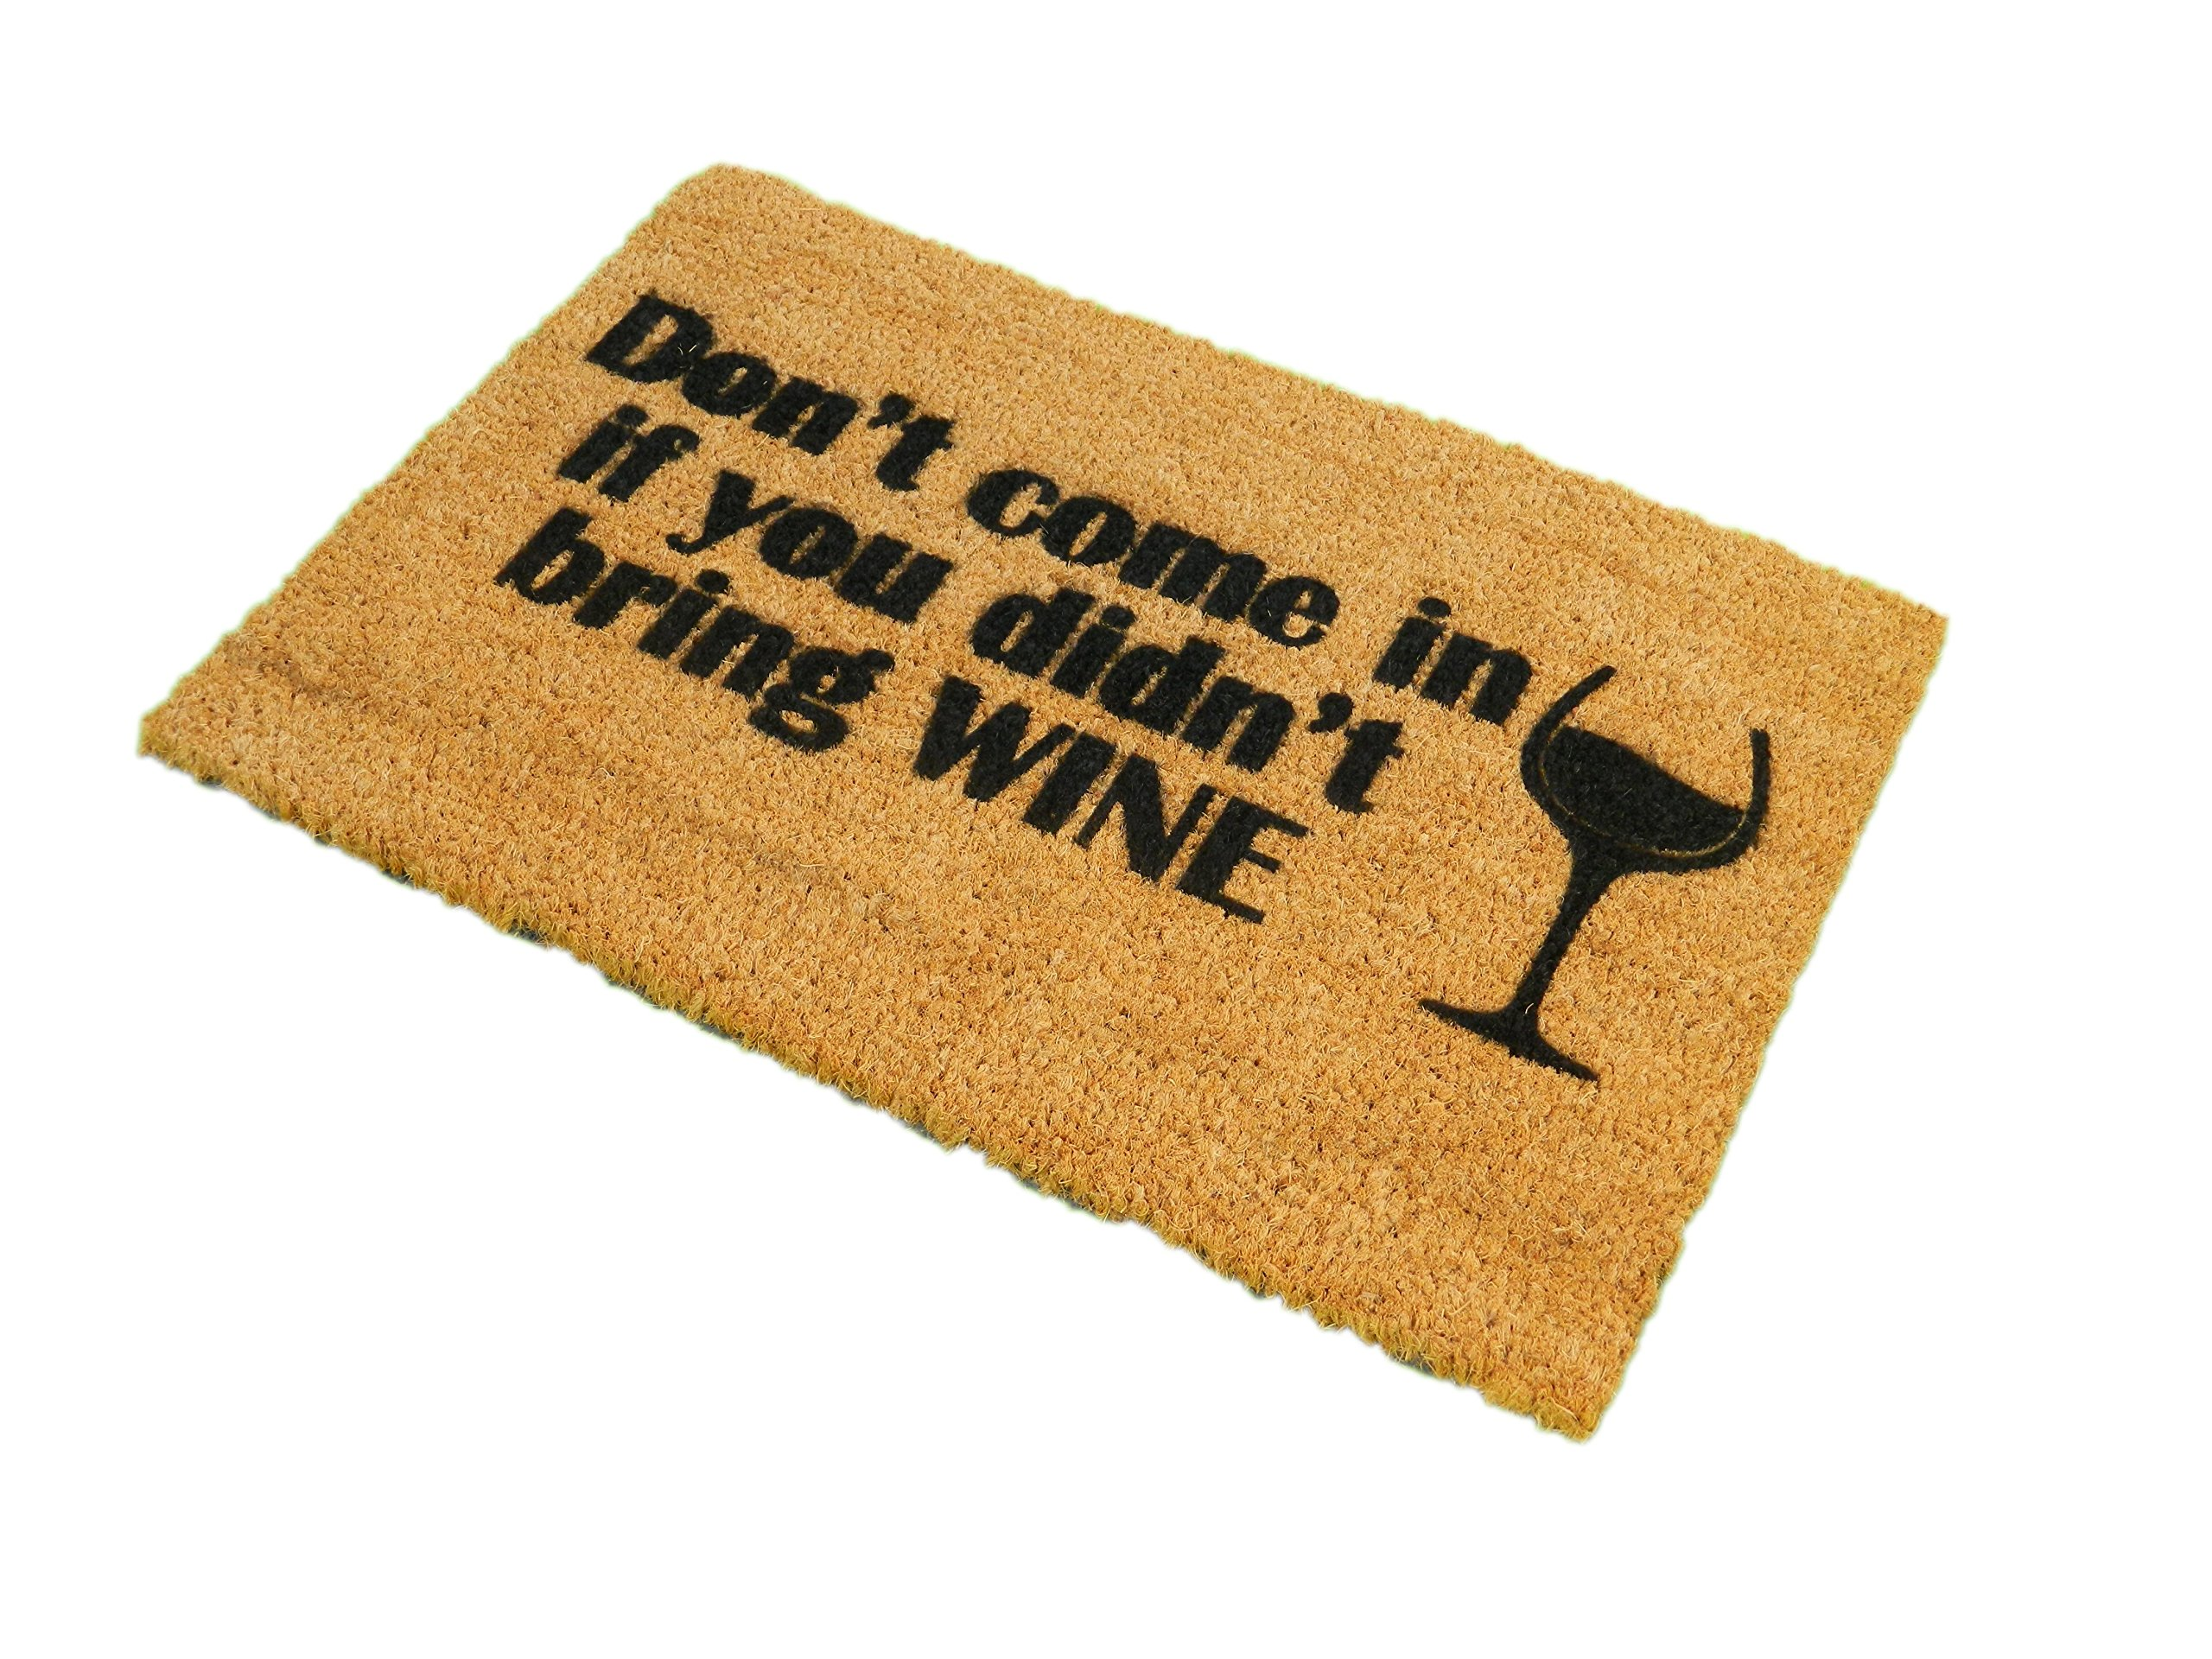 CKB Ltd Don'T Come In Without Wine Novelty Doormat Unique Doormats Front/Back Door Mats Made With A Non-Slip Pvc Backing - Natural Coir - Indoor & Outdoor